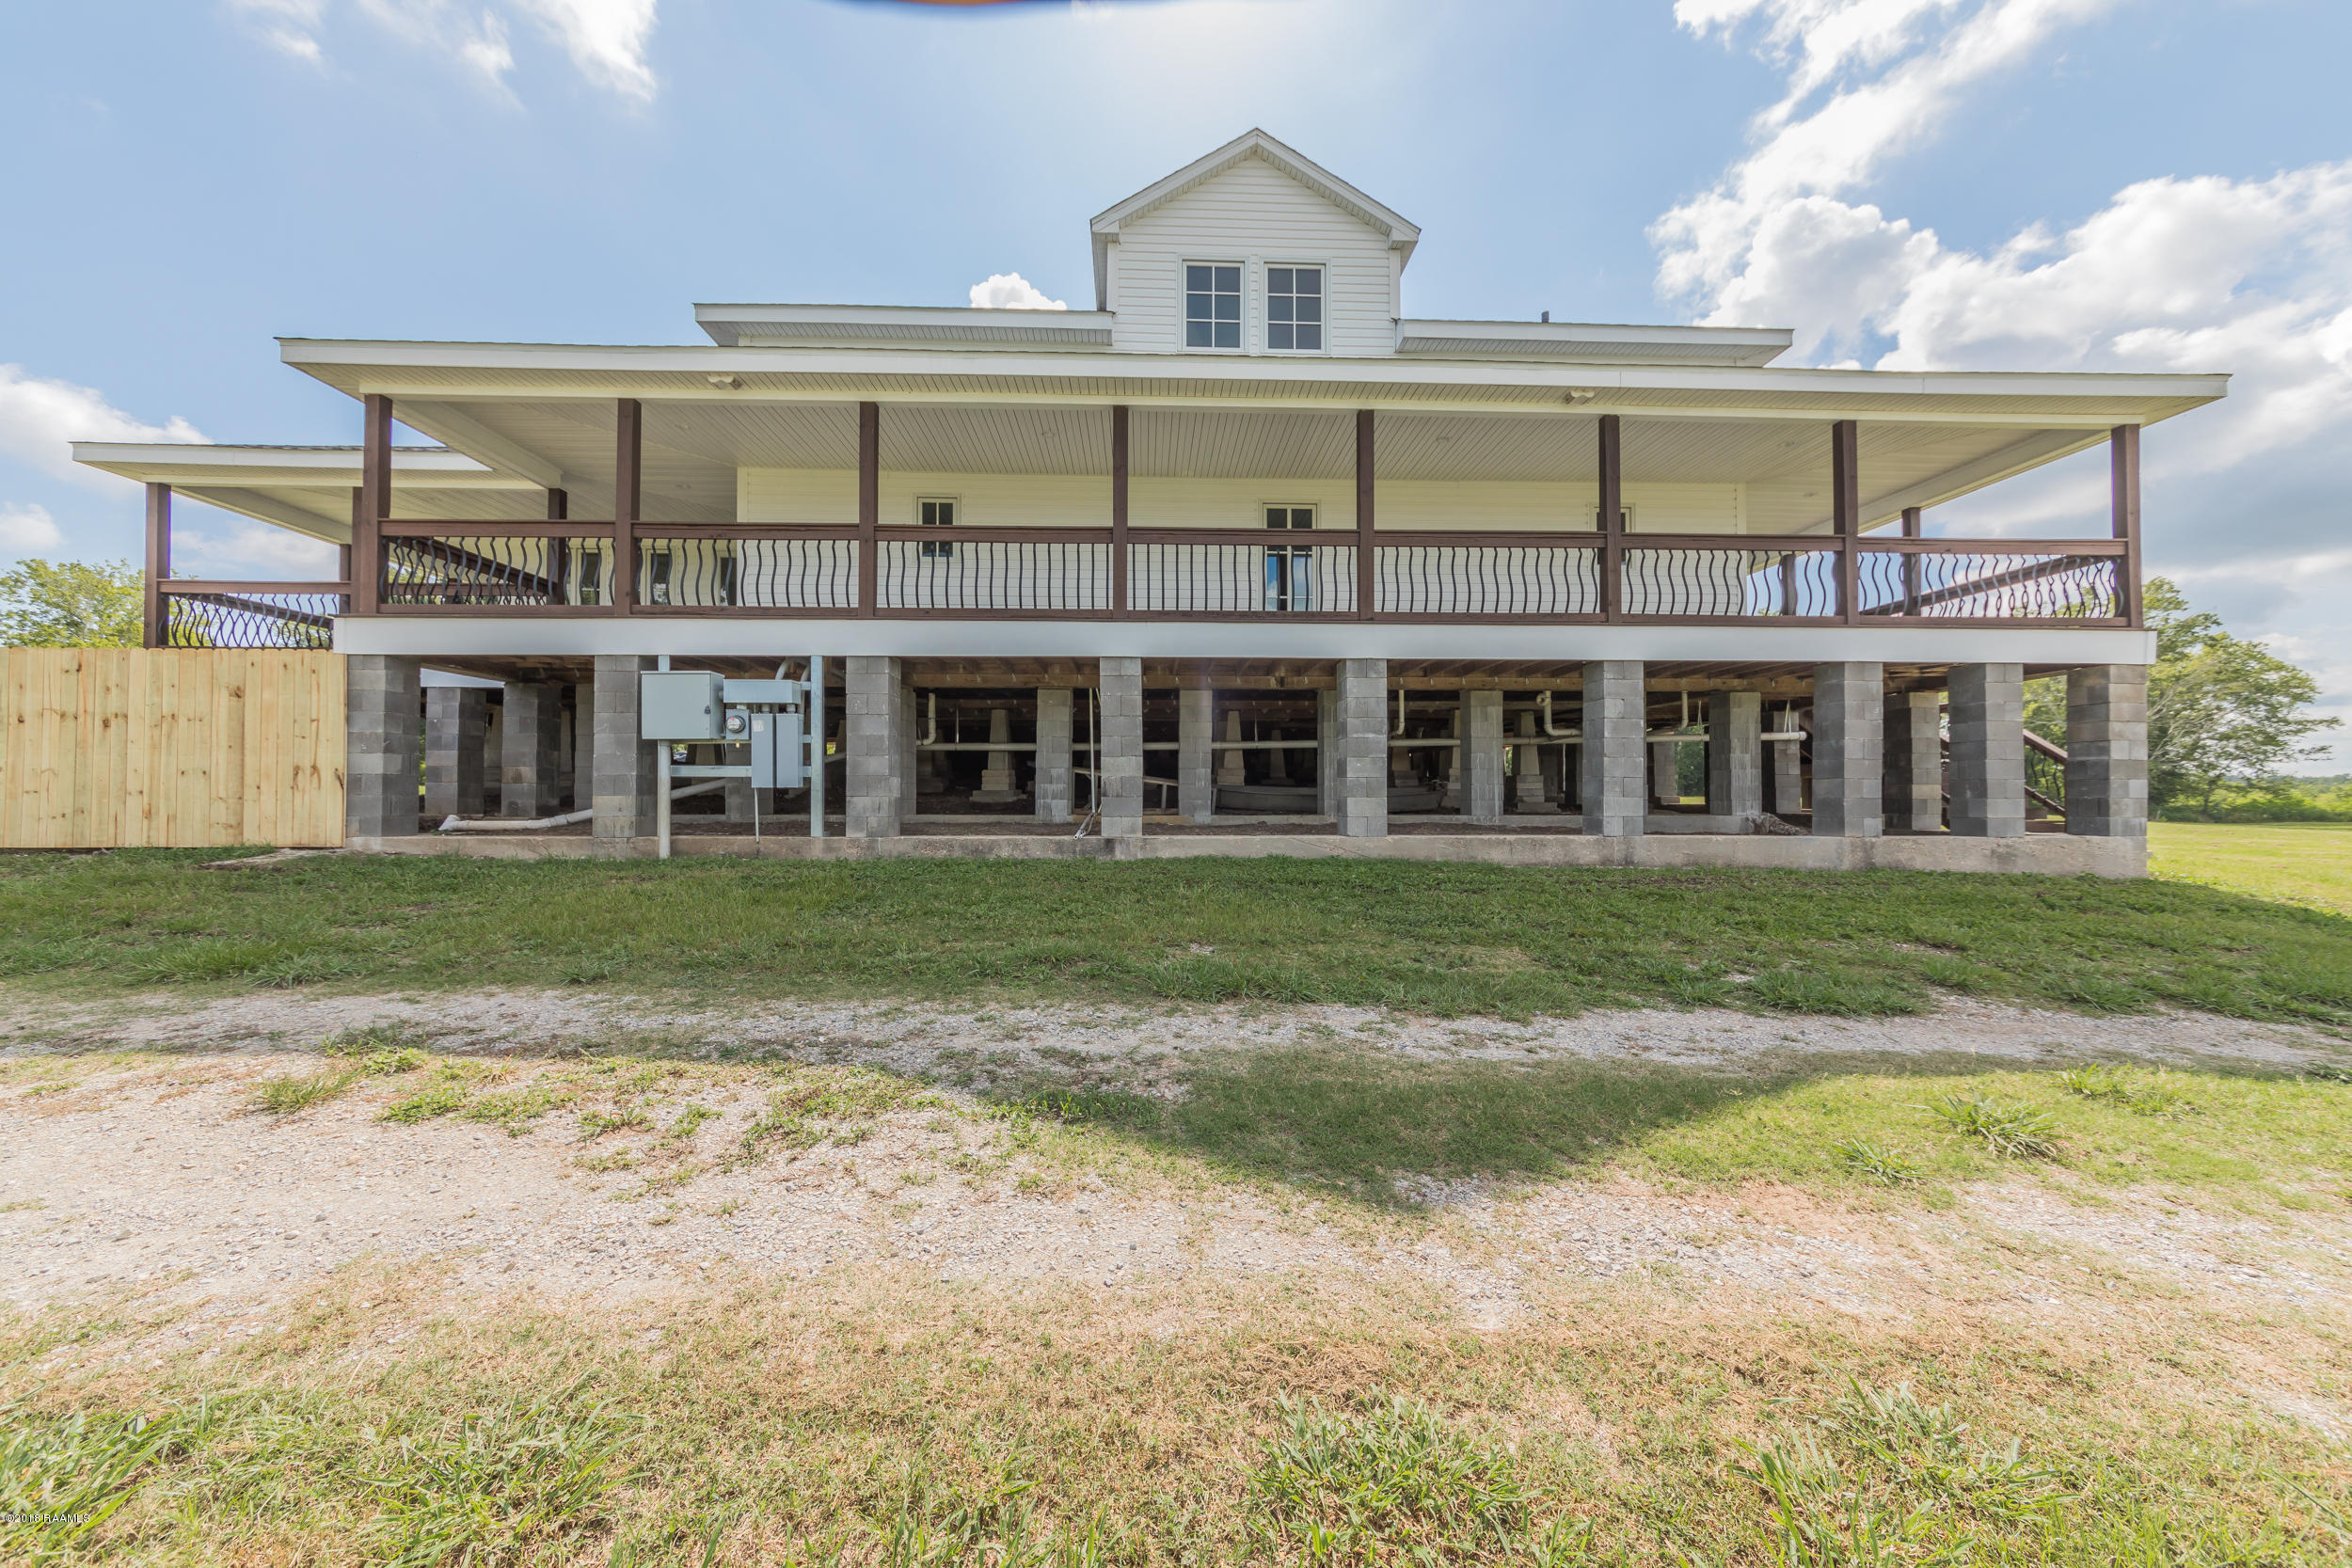 1185 Wade O Martin Road, St. Martinville, LA 70582 Photo #1